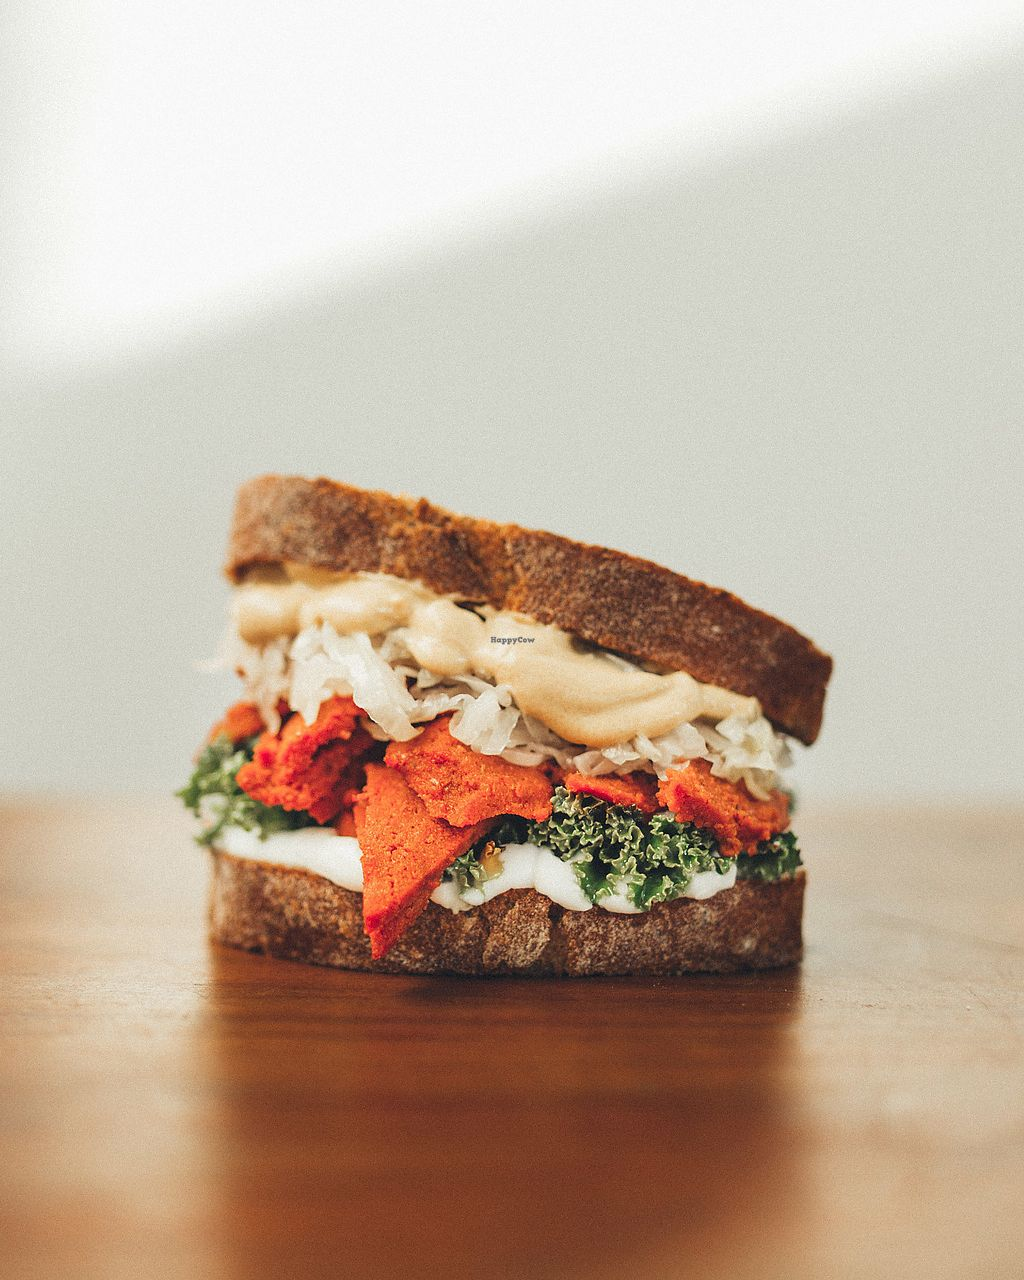 """Photo of Kucha  by <a href=""""/members/profile/Kucha"""">Kucha</a> <br/>Serđo -  buckwheat/beetroot pastrami sandwich in home made bread <br/> March 5, 2018  - <a href='/contact/abuse/image/113795/367212'>Report</a>"""